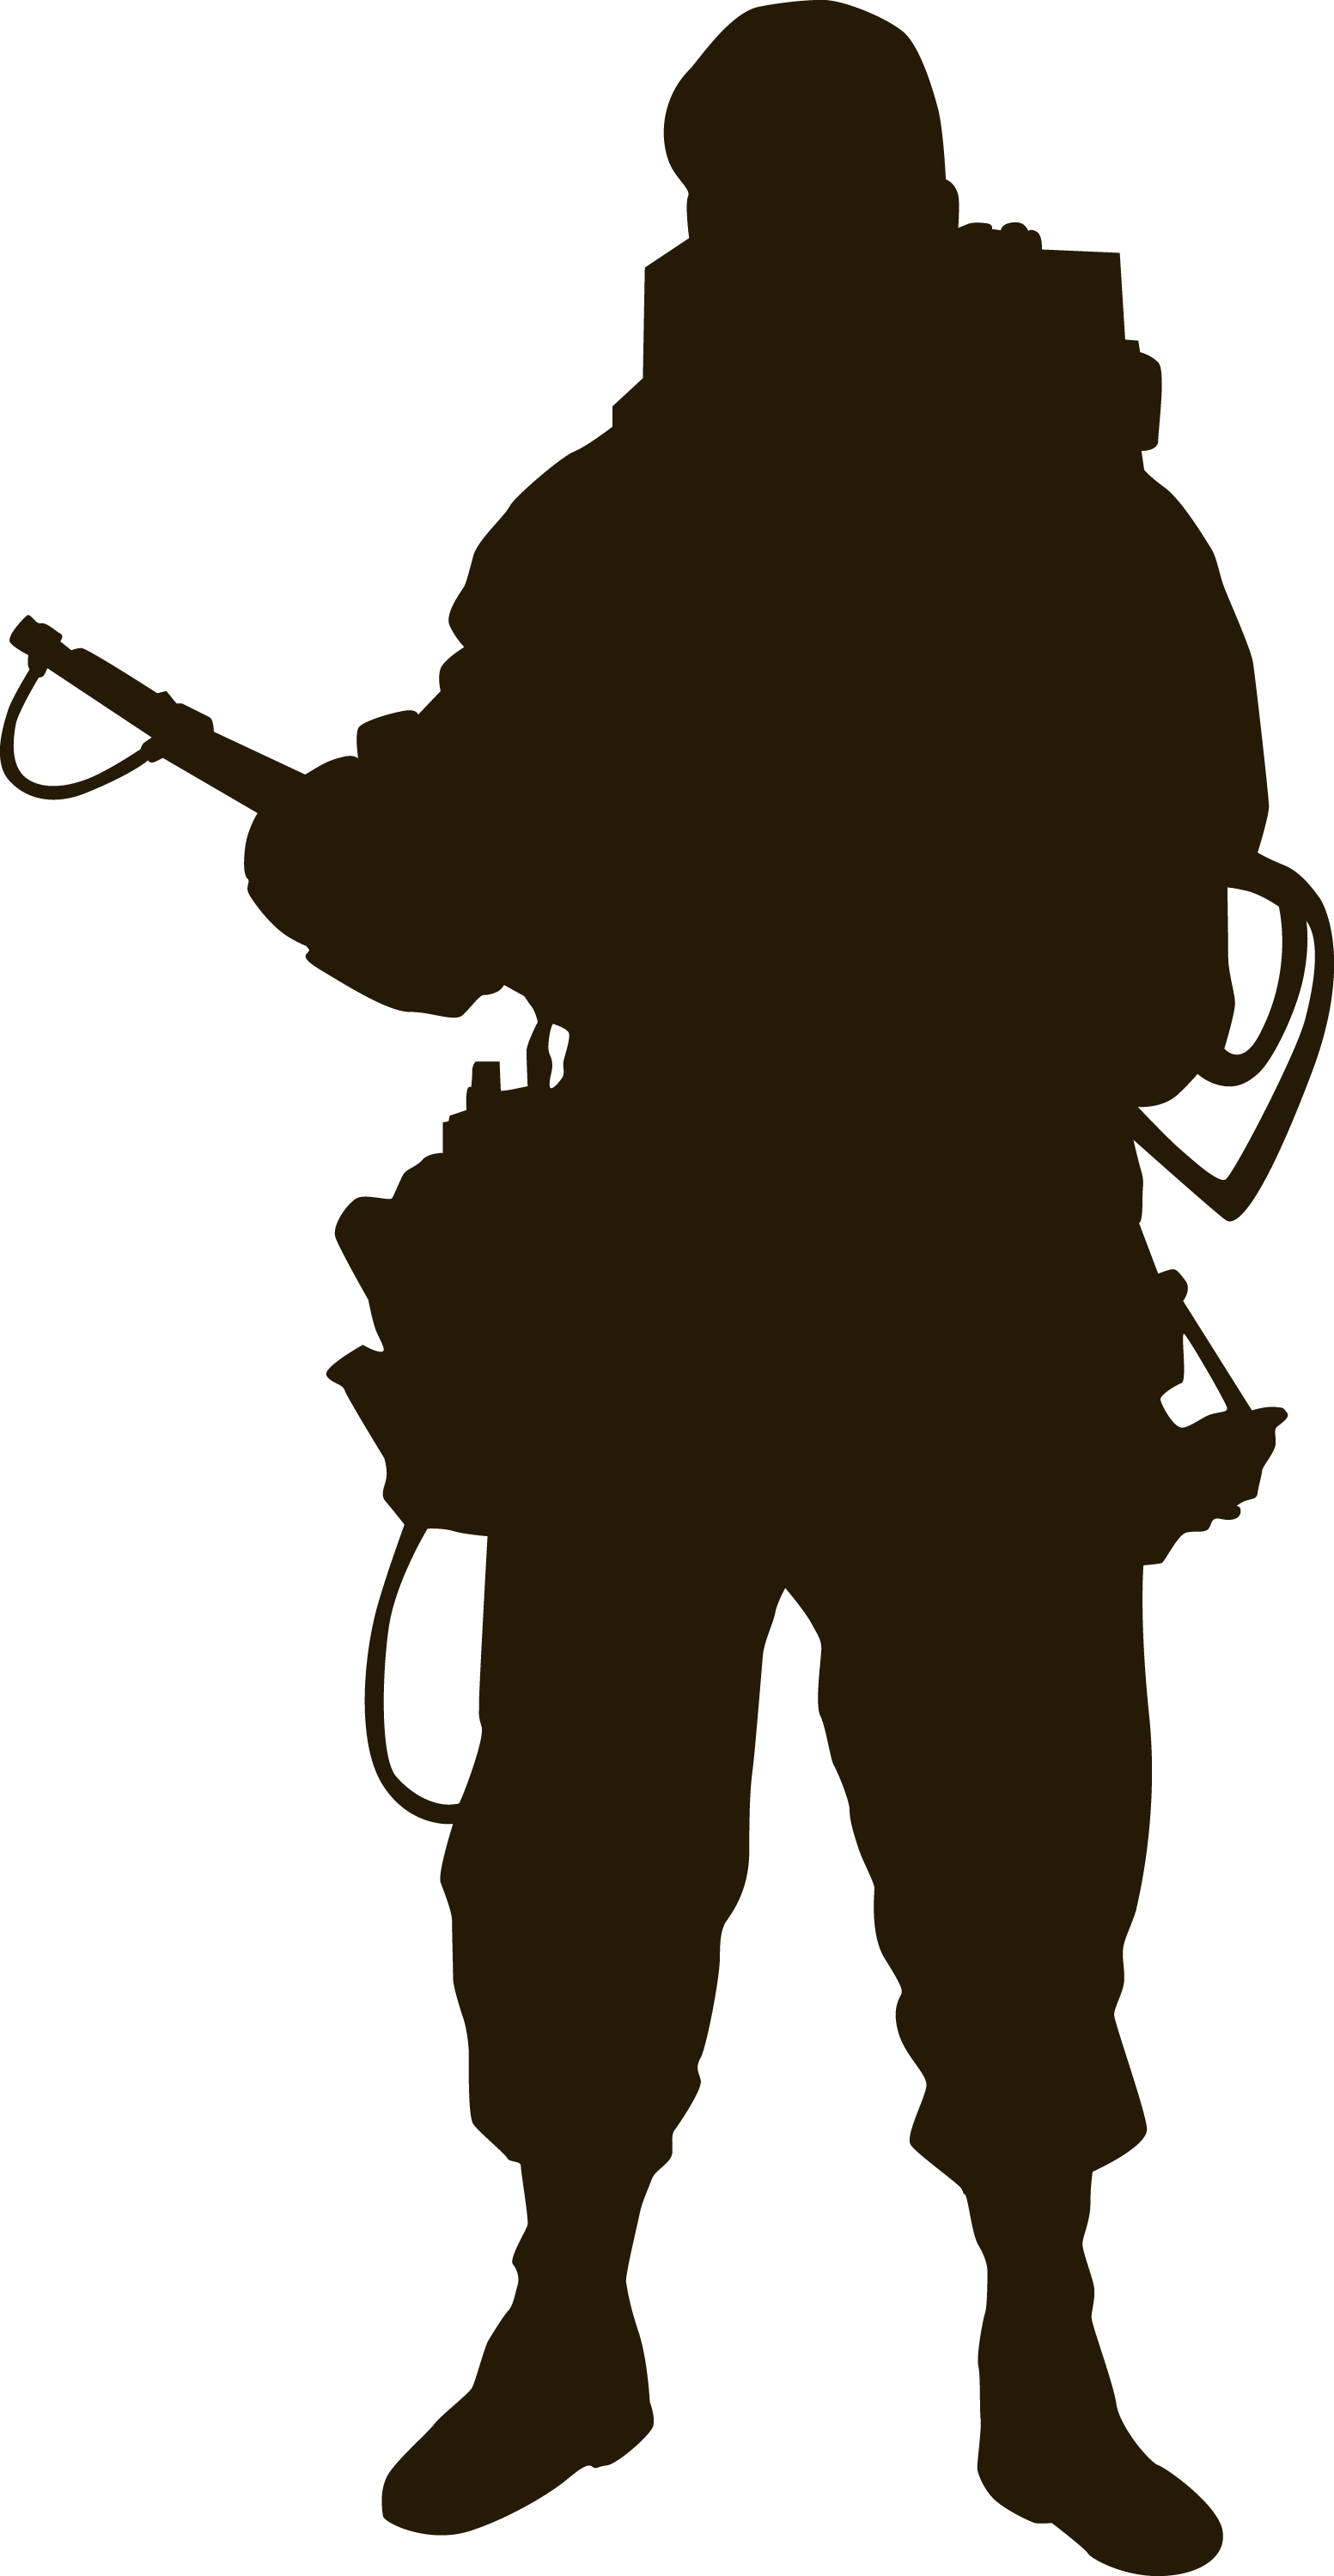 Ghostbusters svg silhouette. Image gb officialcreativeassestsgb png